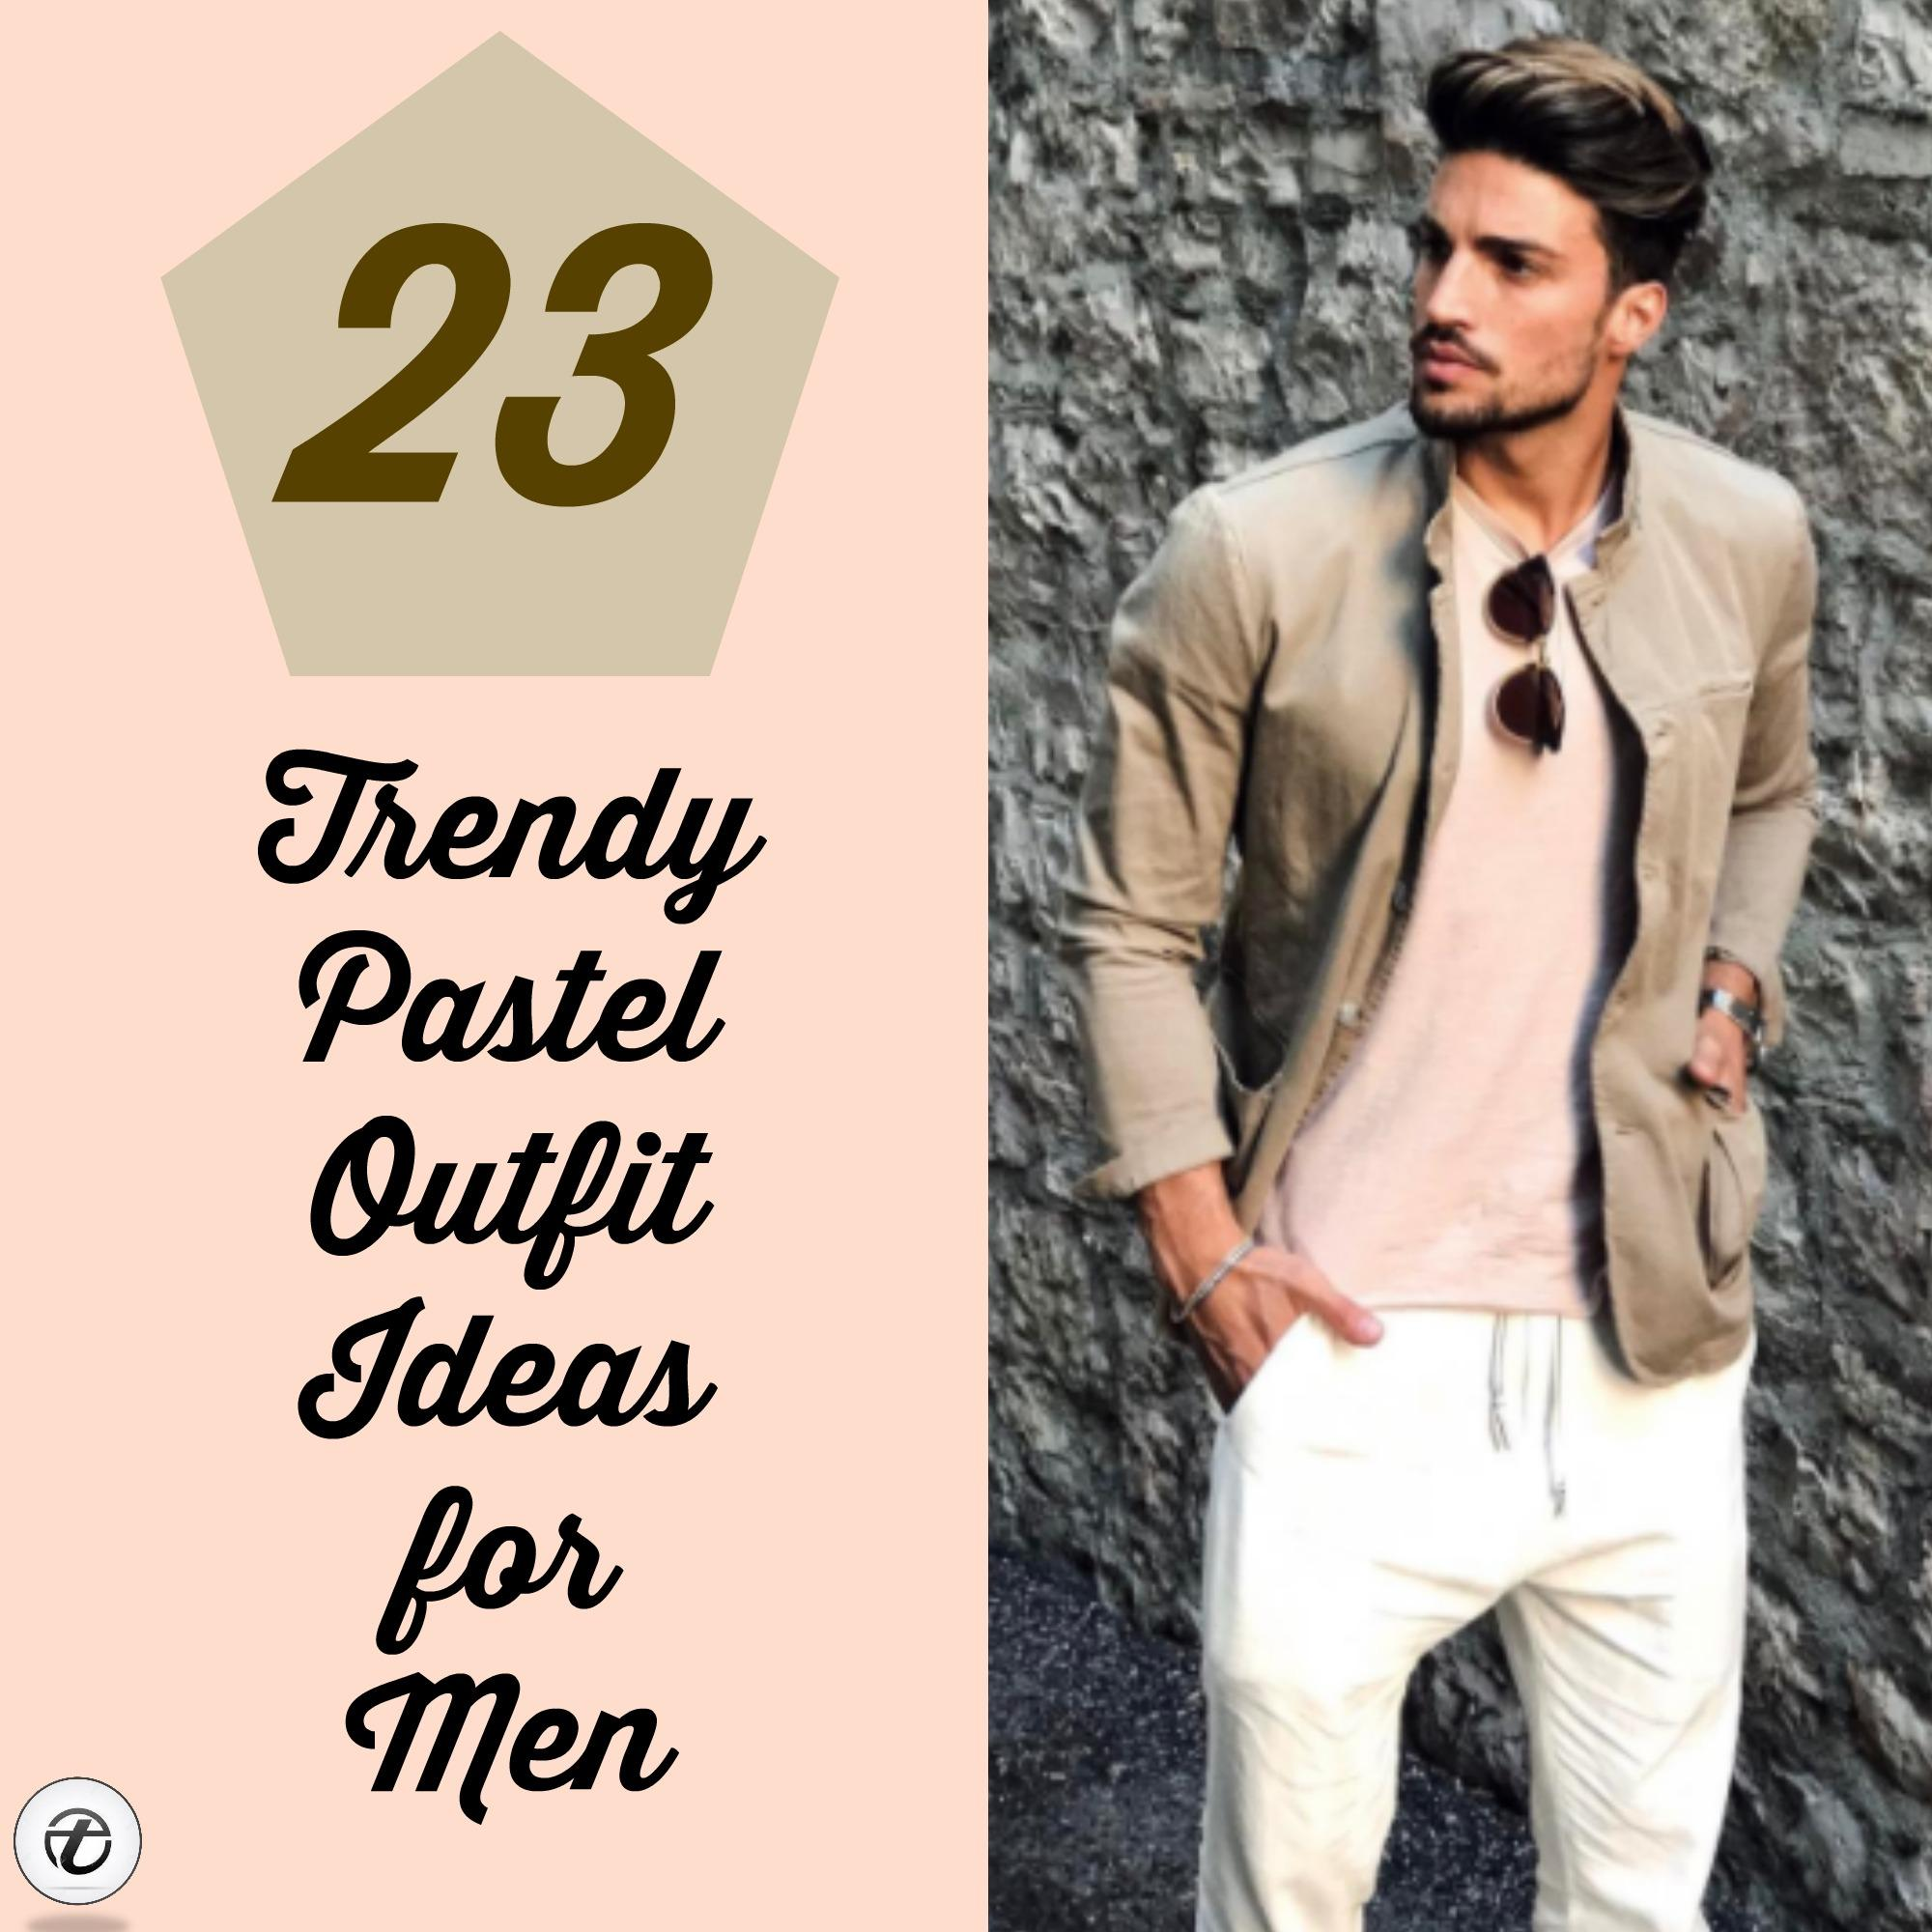 Forum on this topic: 20 Floral Shirt Outfits For Men, 20-floral-shirt-outfits-for-men/